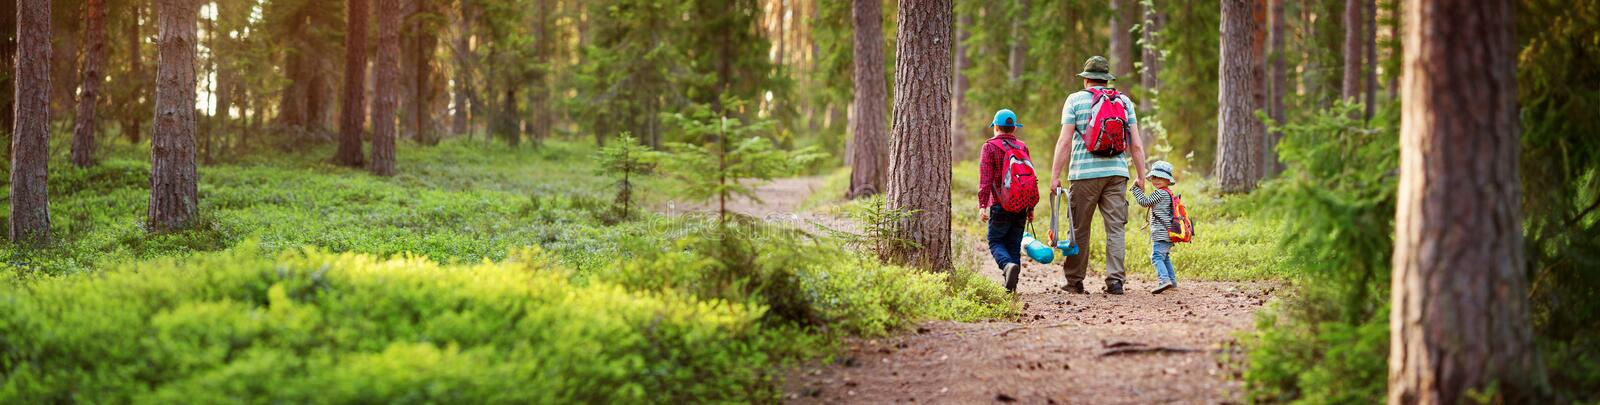 Father and boys going camping with tent in nature. Man with sons with backpacks walking in the forest stock photo